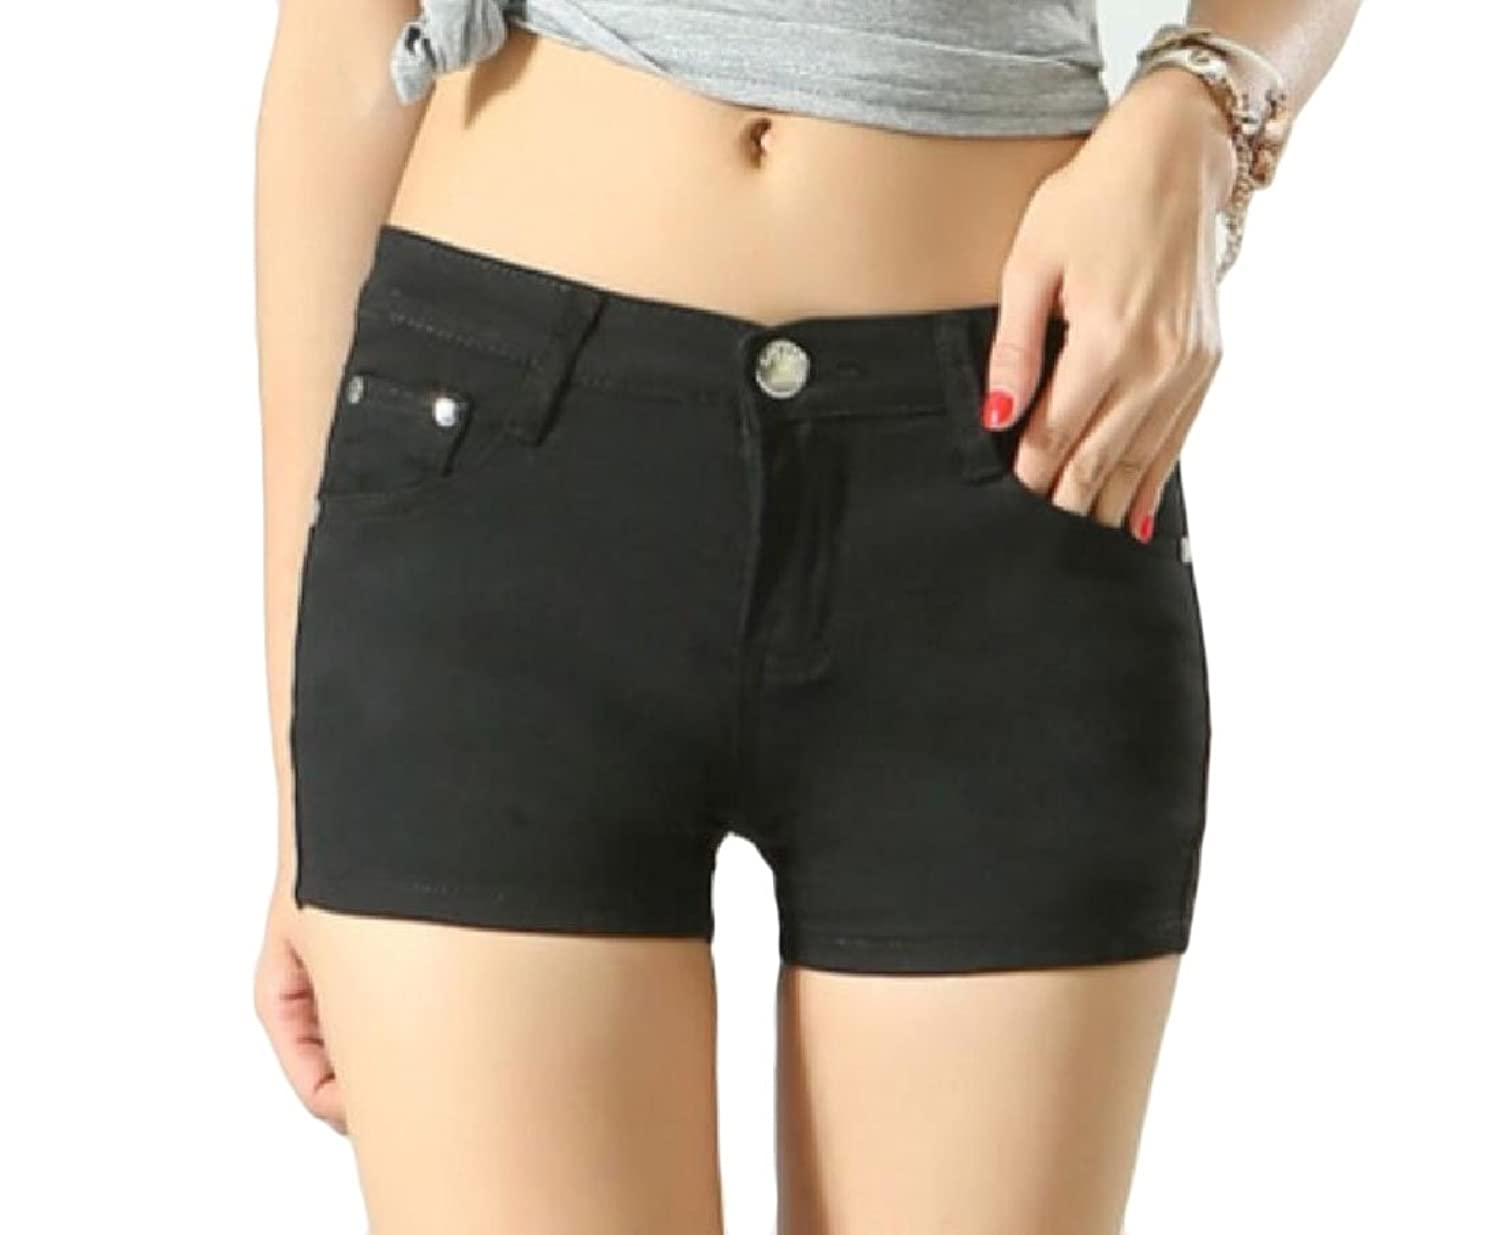 48a340ebcb99 Abetteric Women Short Summer Shorts Skinny Summer Leisure Mulit Color Shorts  Jeans Black S